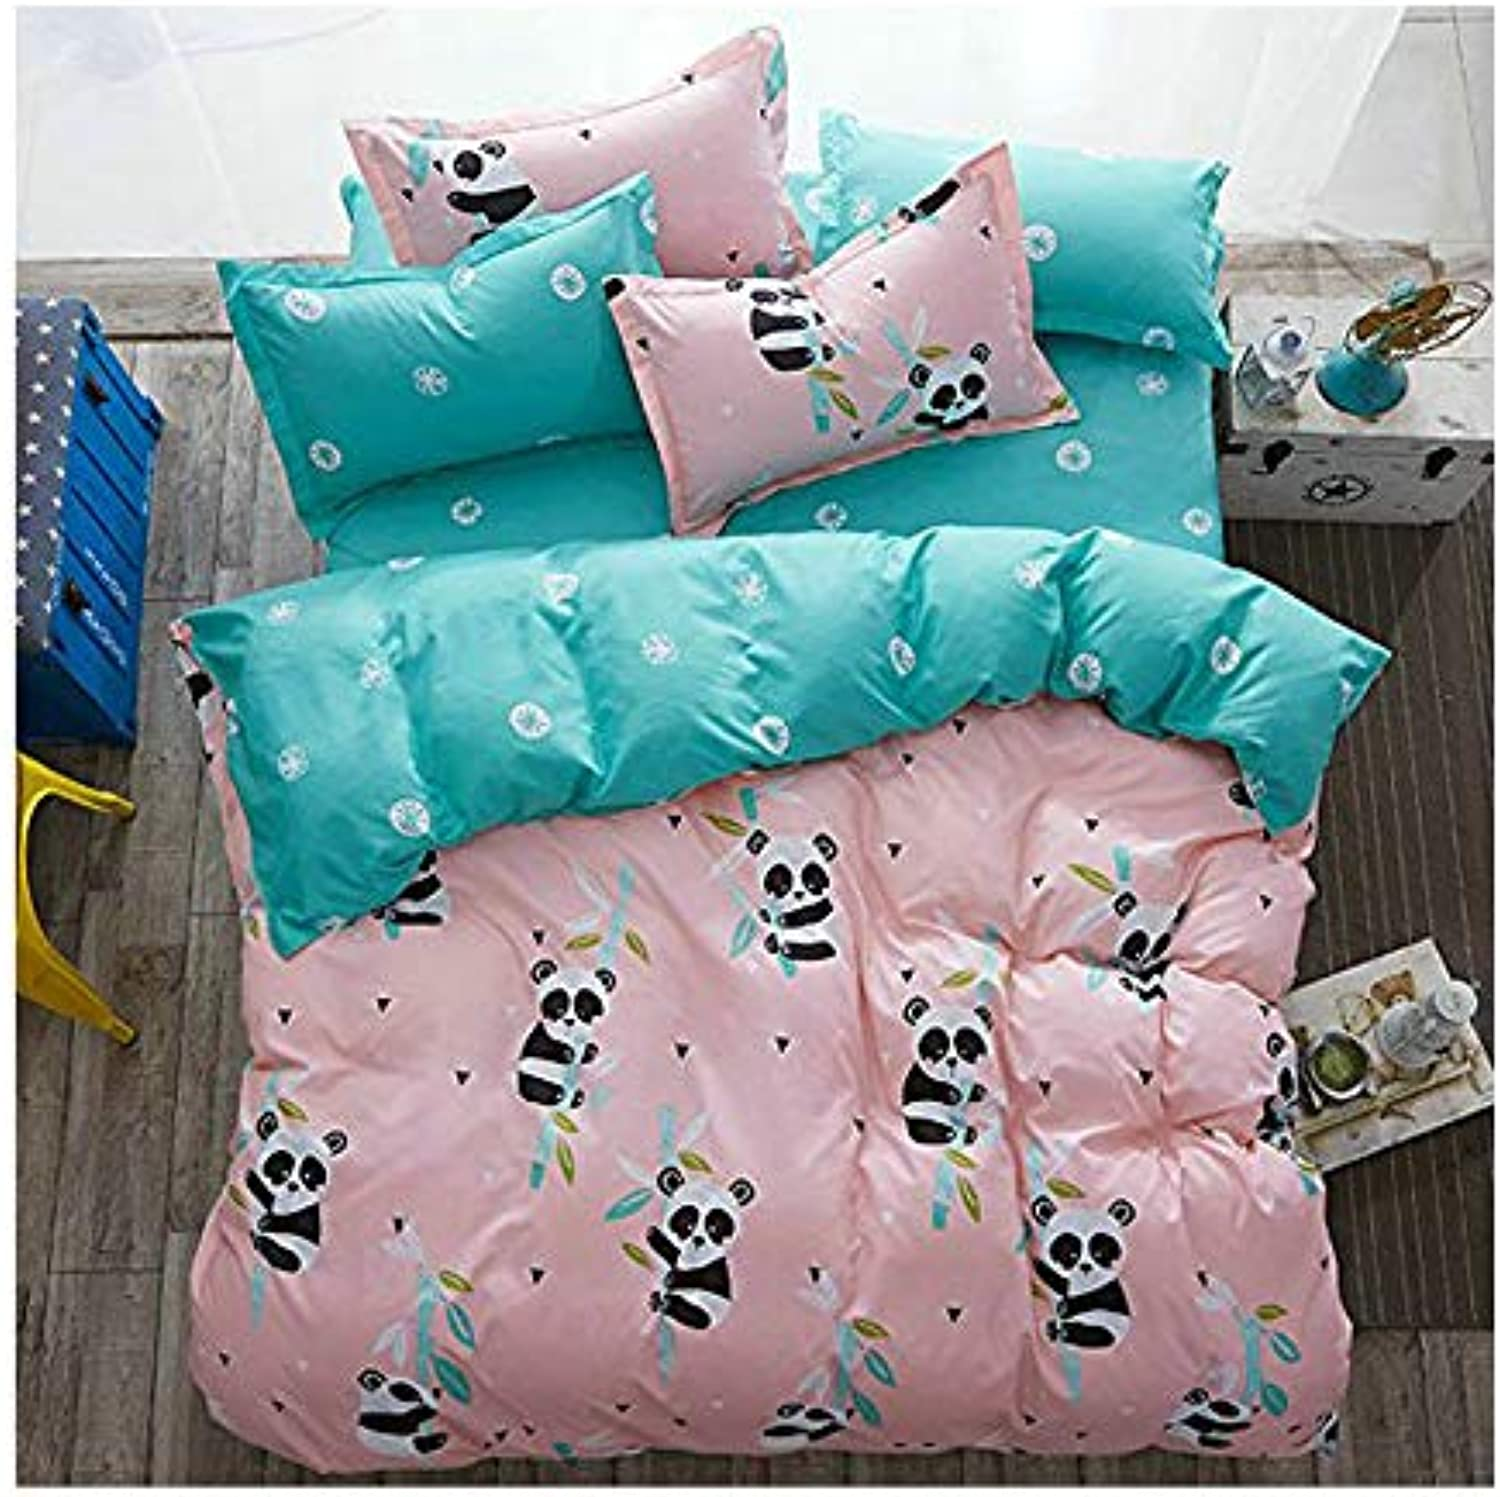 Fashion Design Kids Adult Bedding Sets 4pcs Set One Duvet Cover Without Comforter Two Pillow Cases One Flat Sheet Twin Full Queen Size (Full, Panda A)